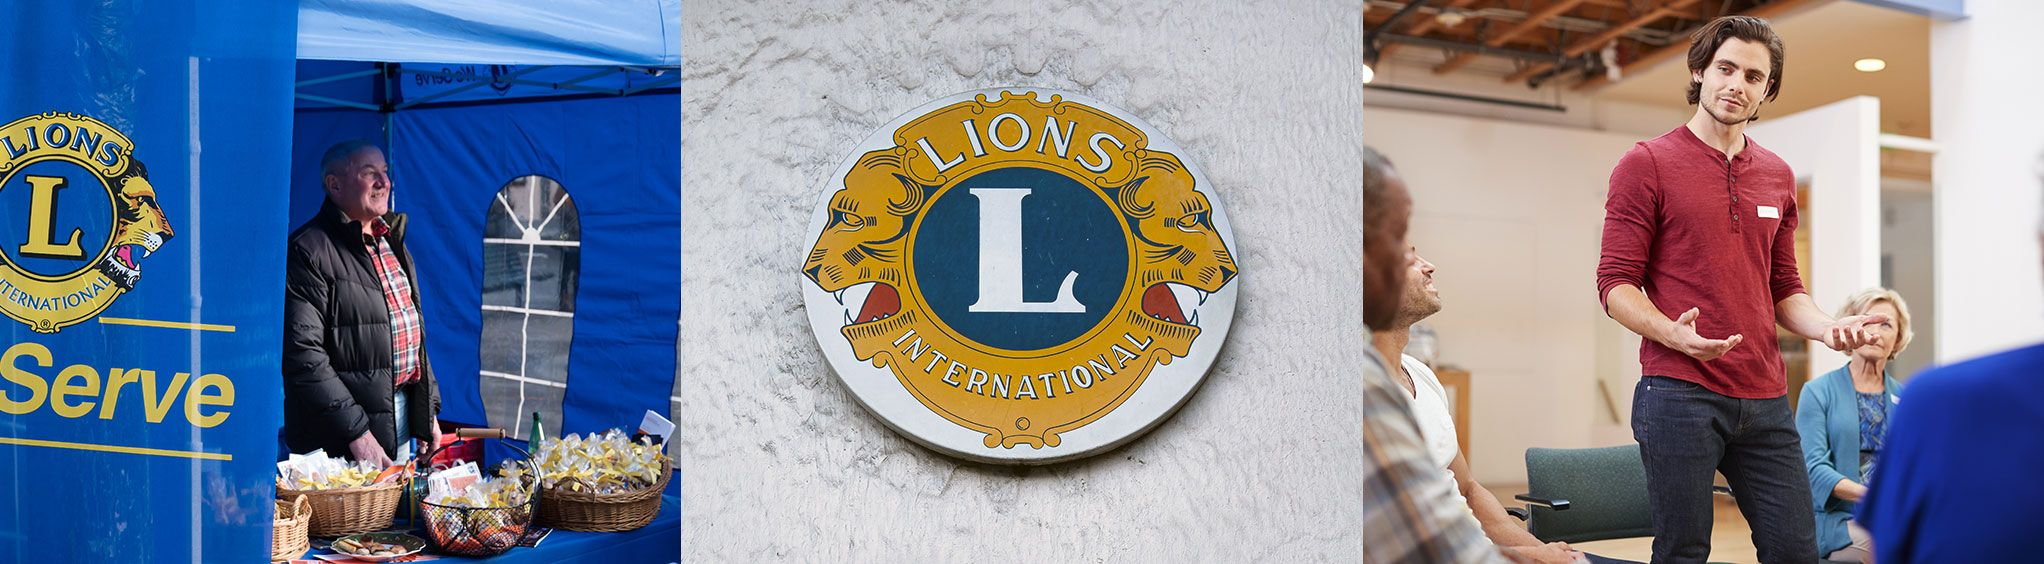 Mandeville Lions Club near New Orleans